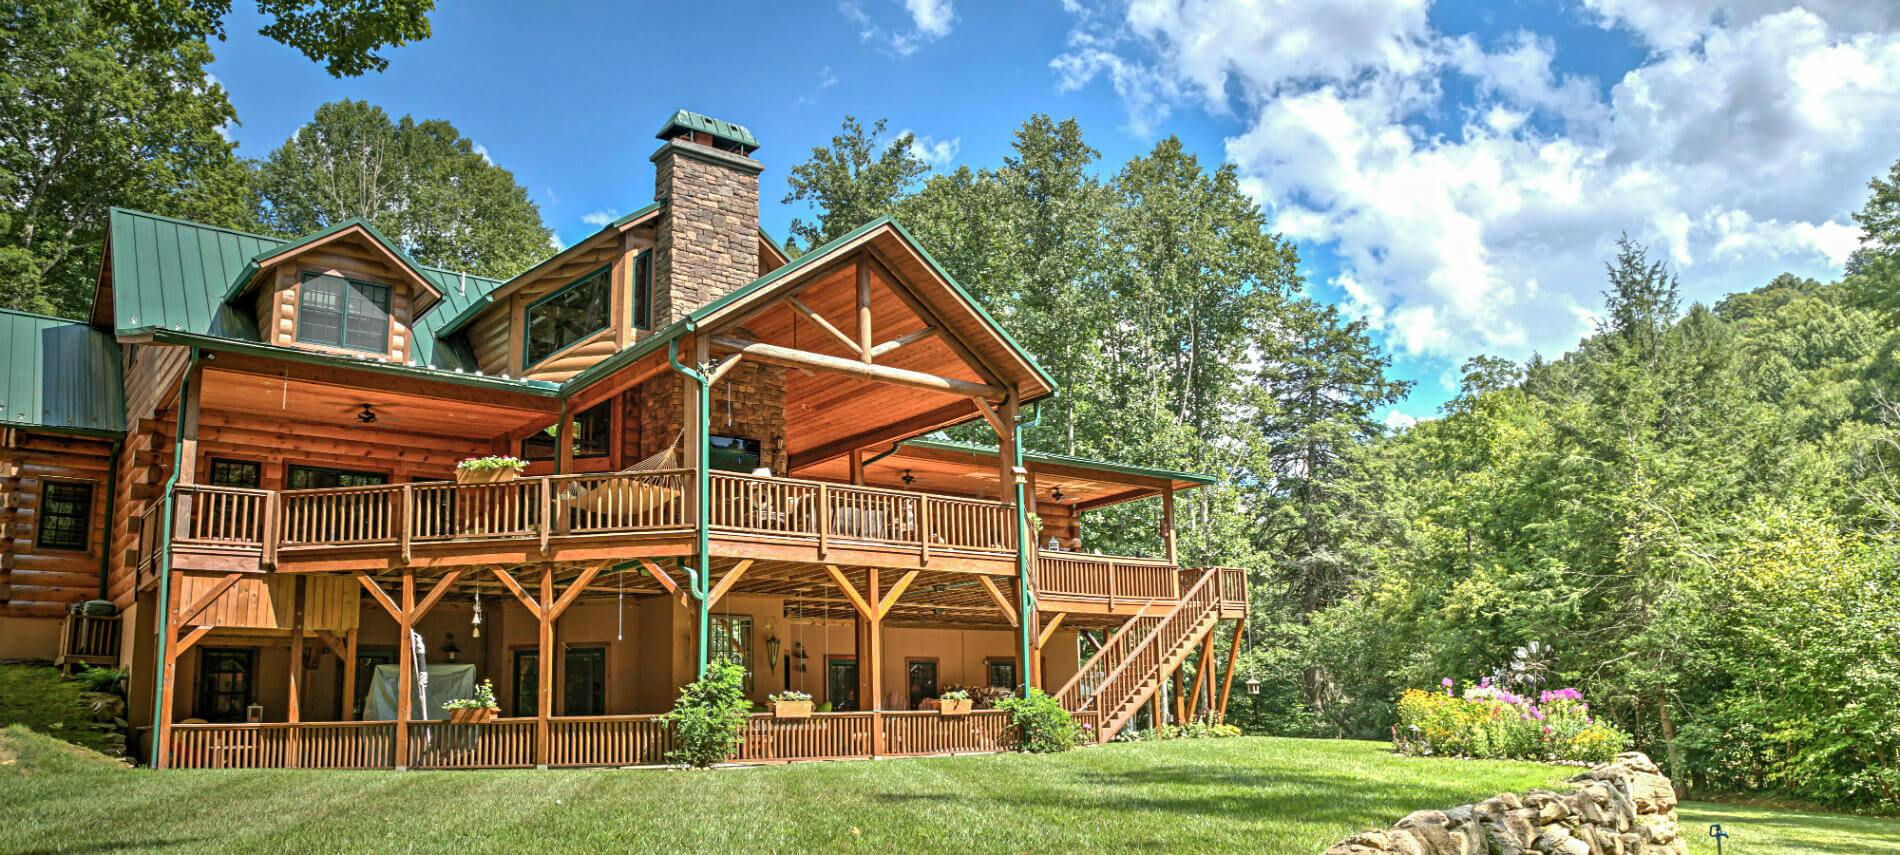 View of the Lodge showing two porches with window boxes on railing. Trees and flowers surround the house.